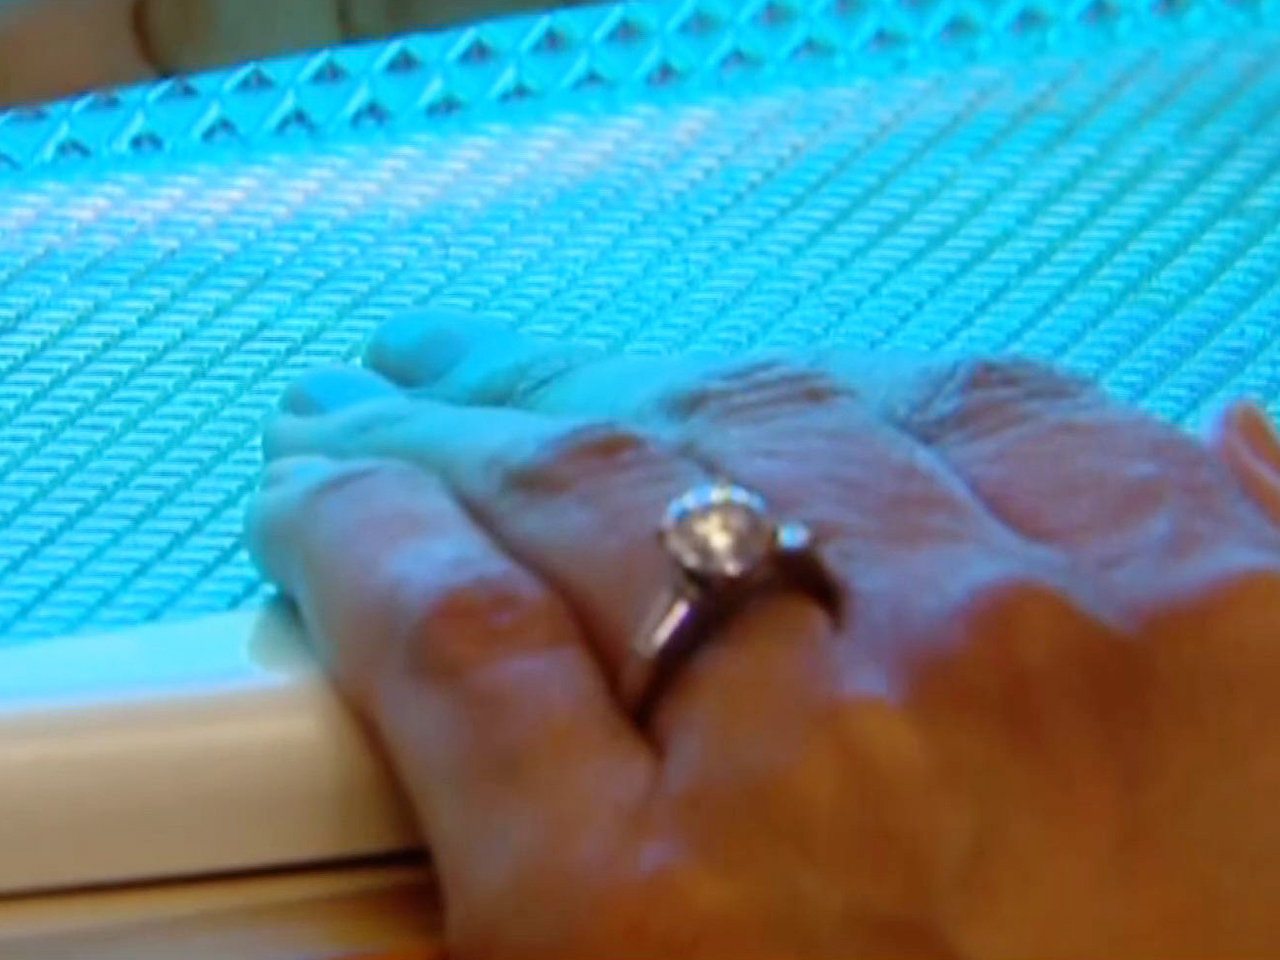 Gel manicures may lead to nail problems and potential skin cancer ...